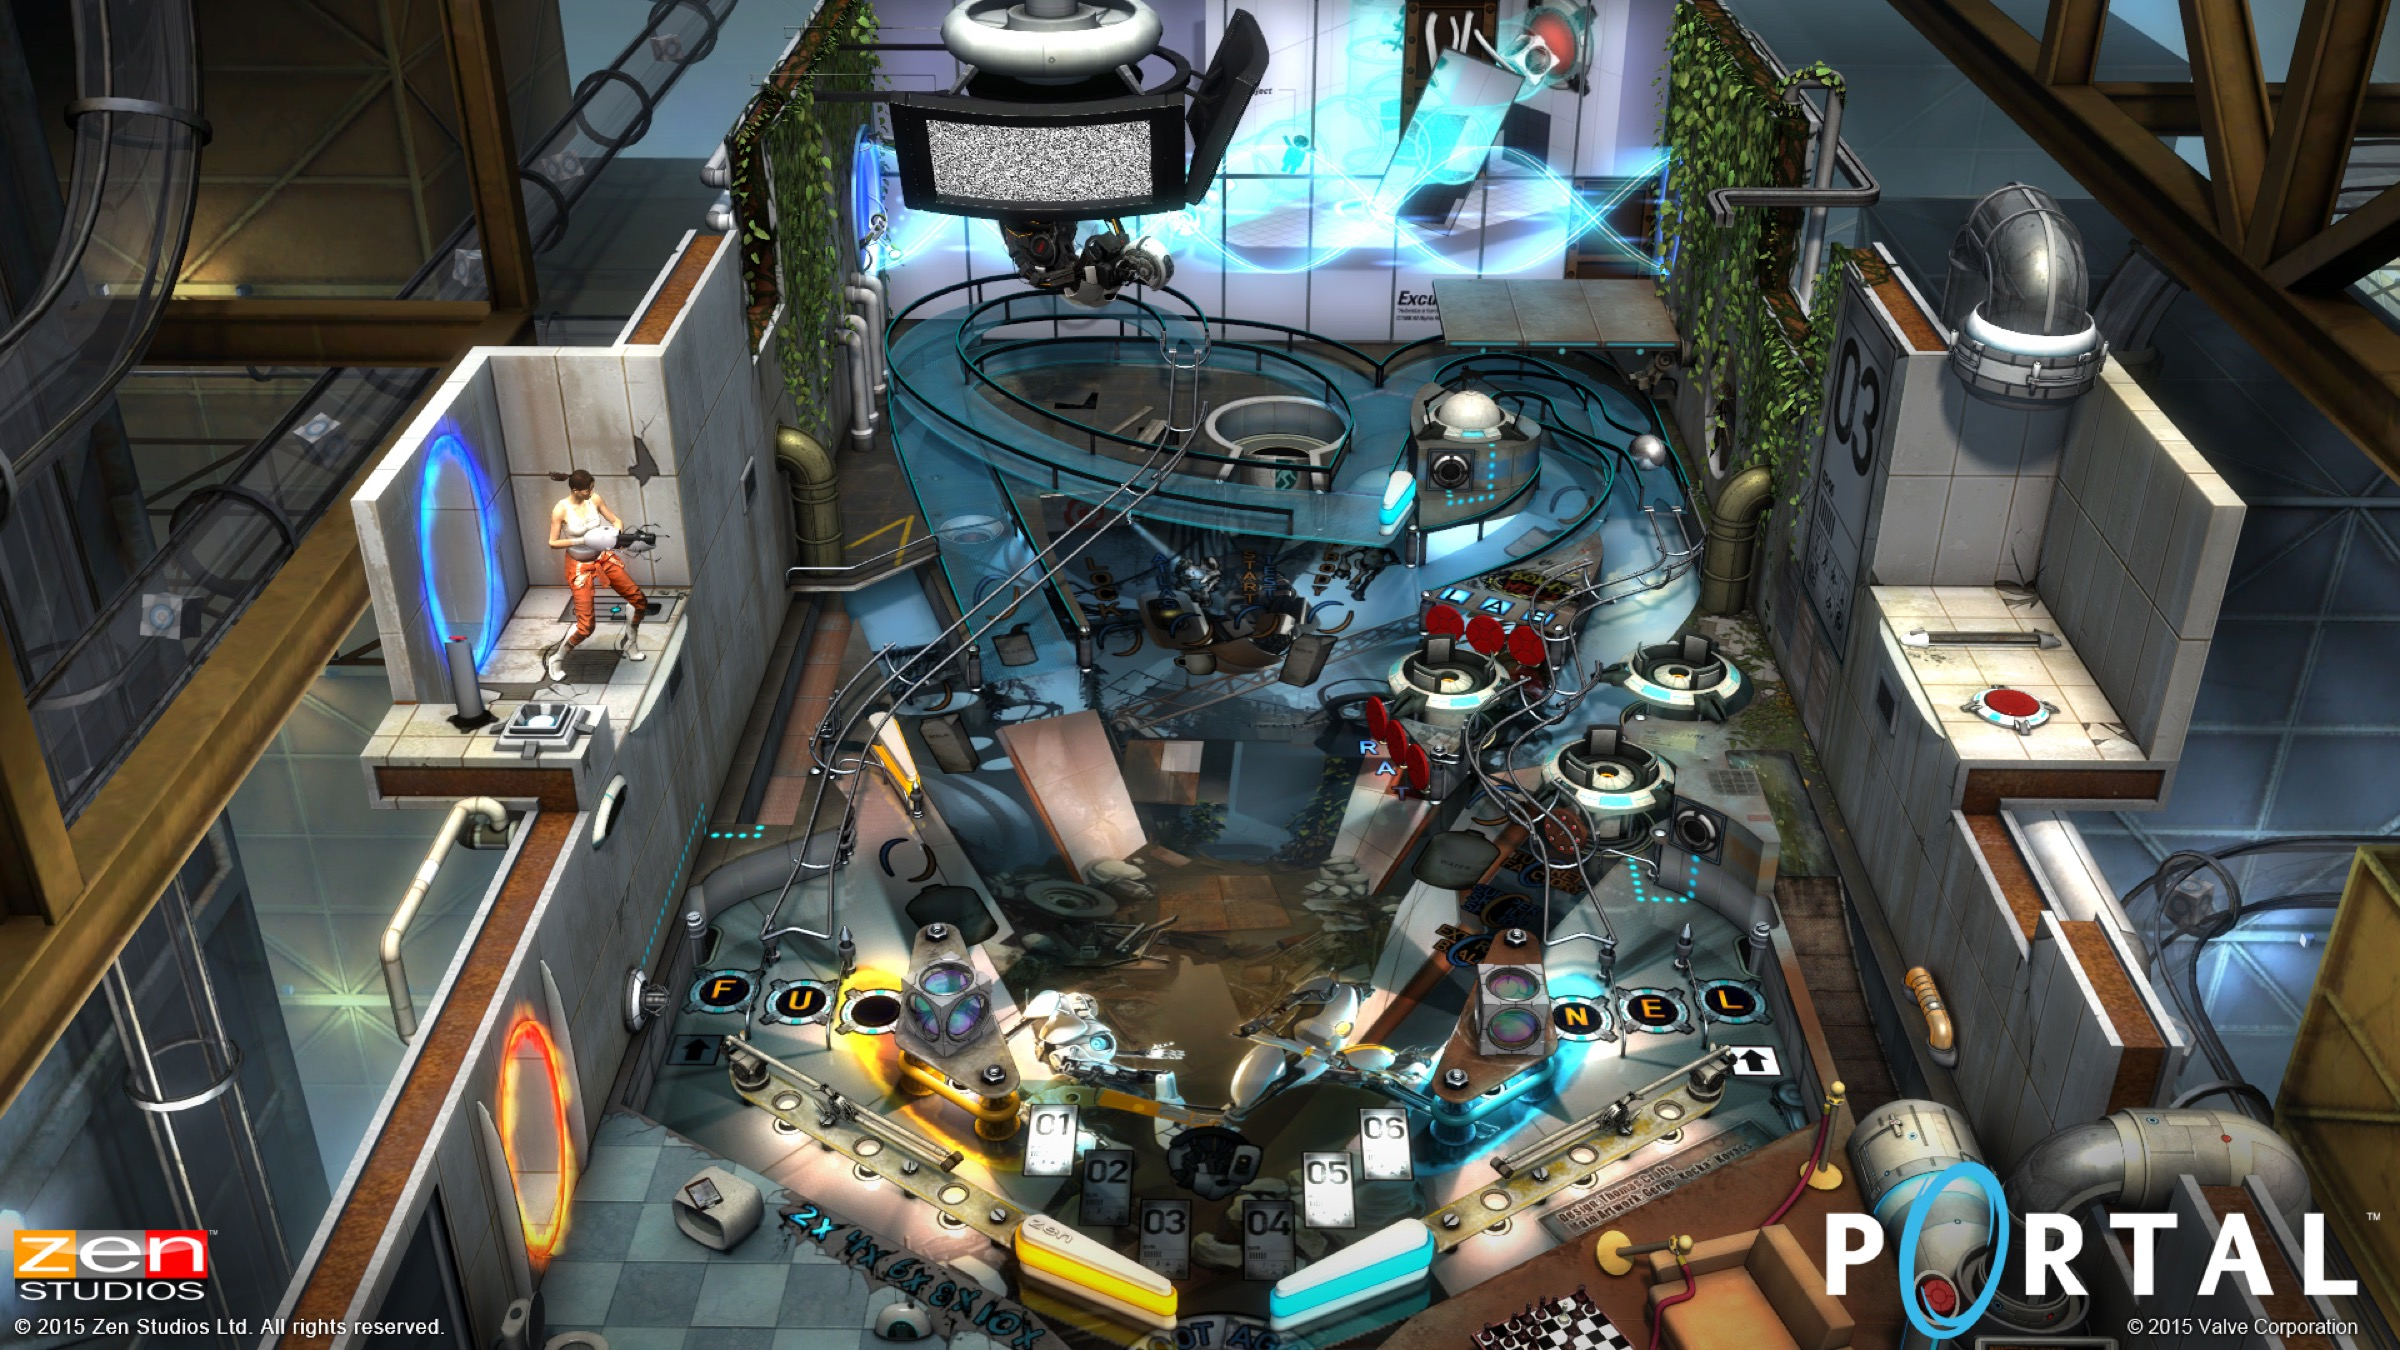 Zen Studios launches a new, Portal-themed pinball game on the App Store